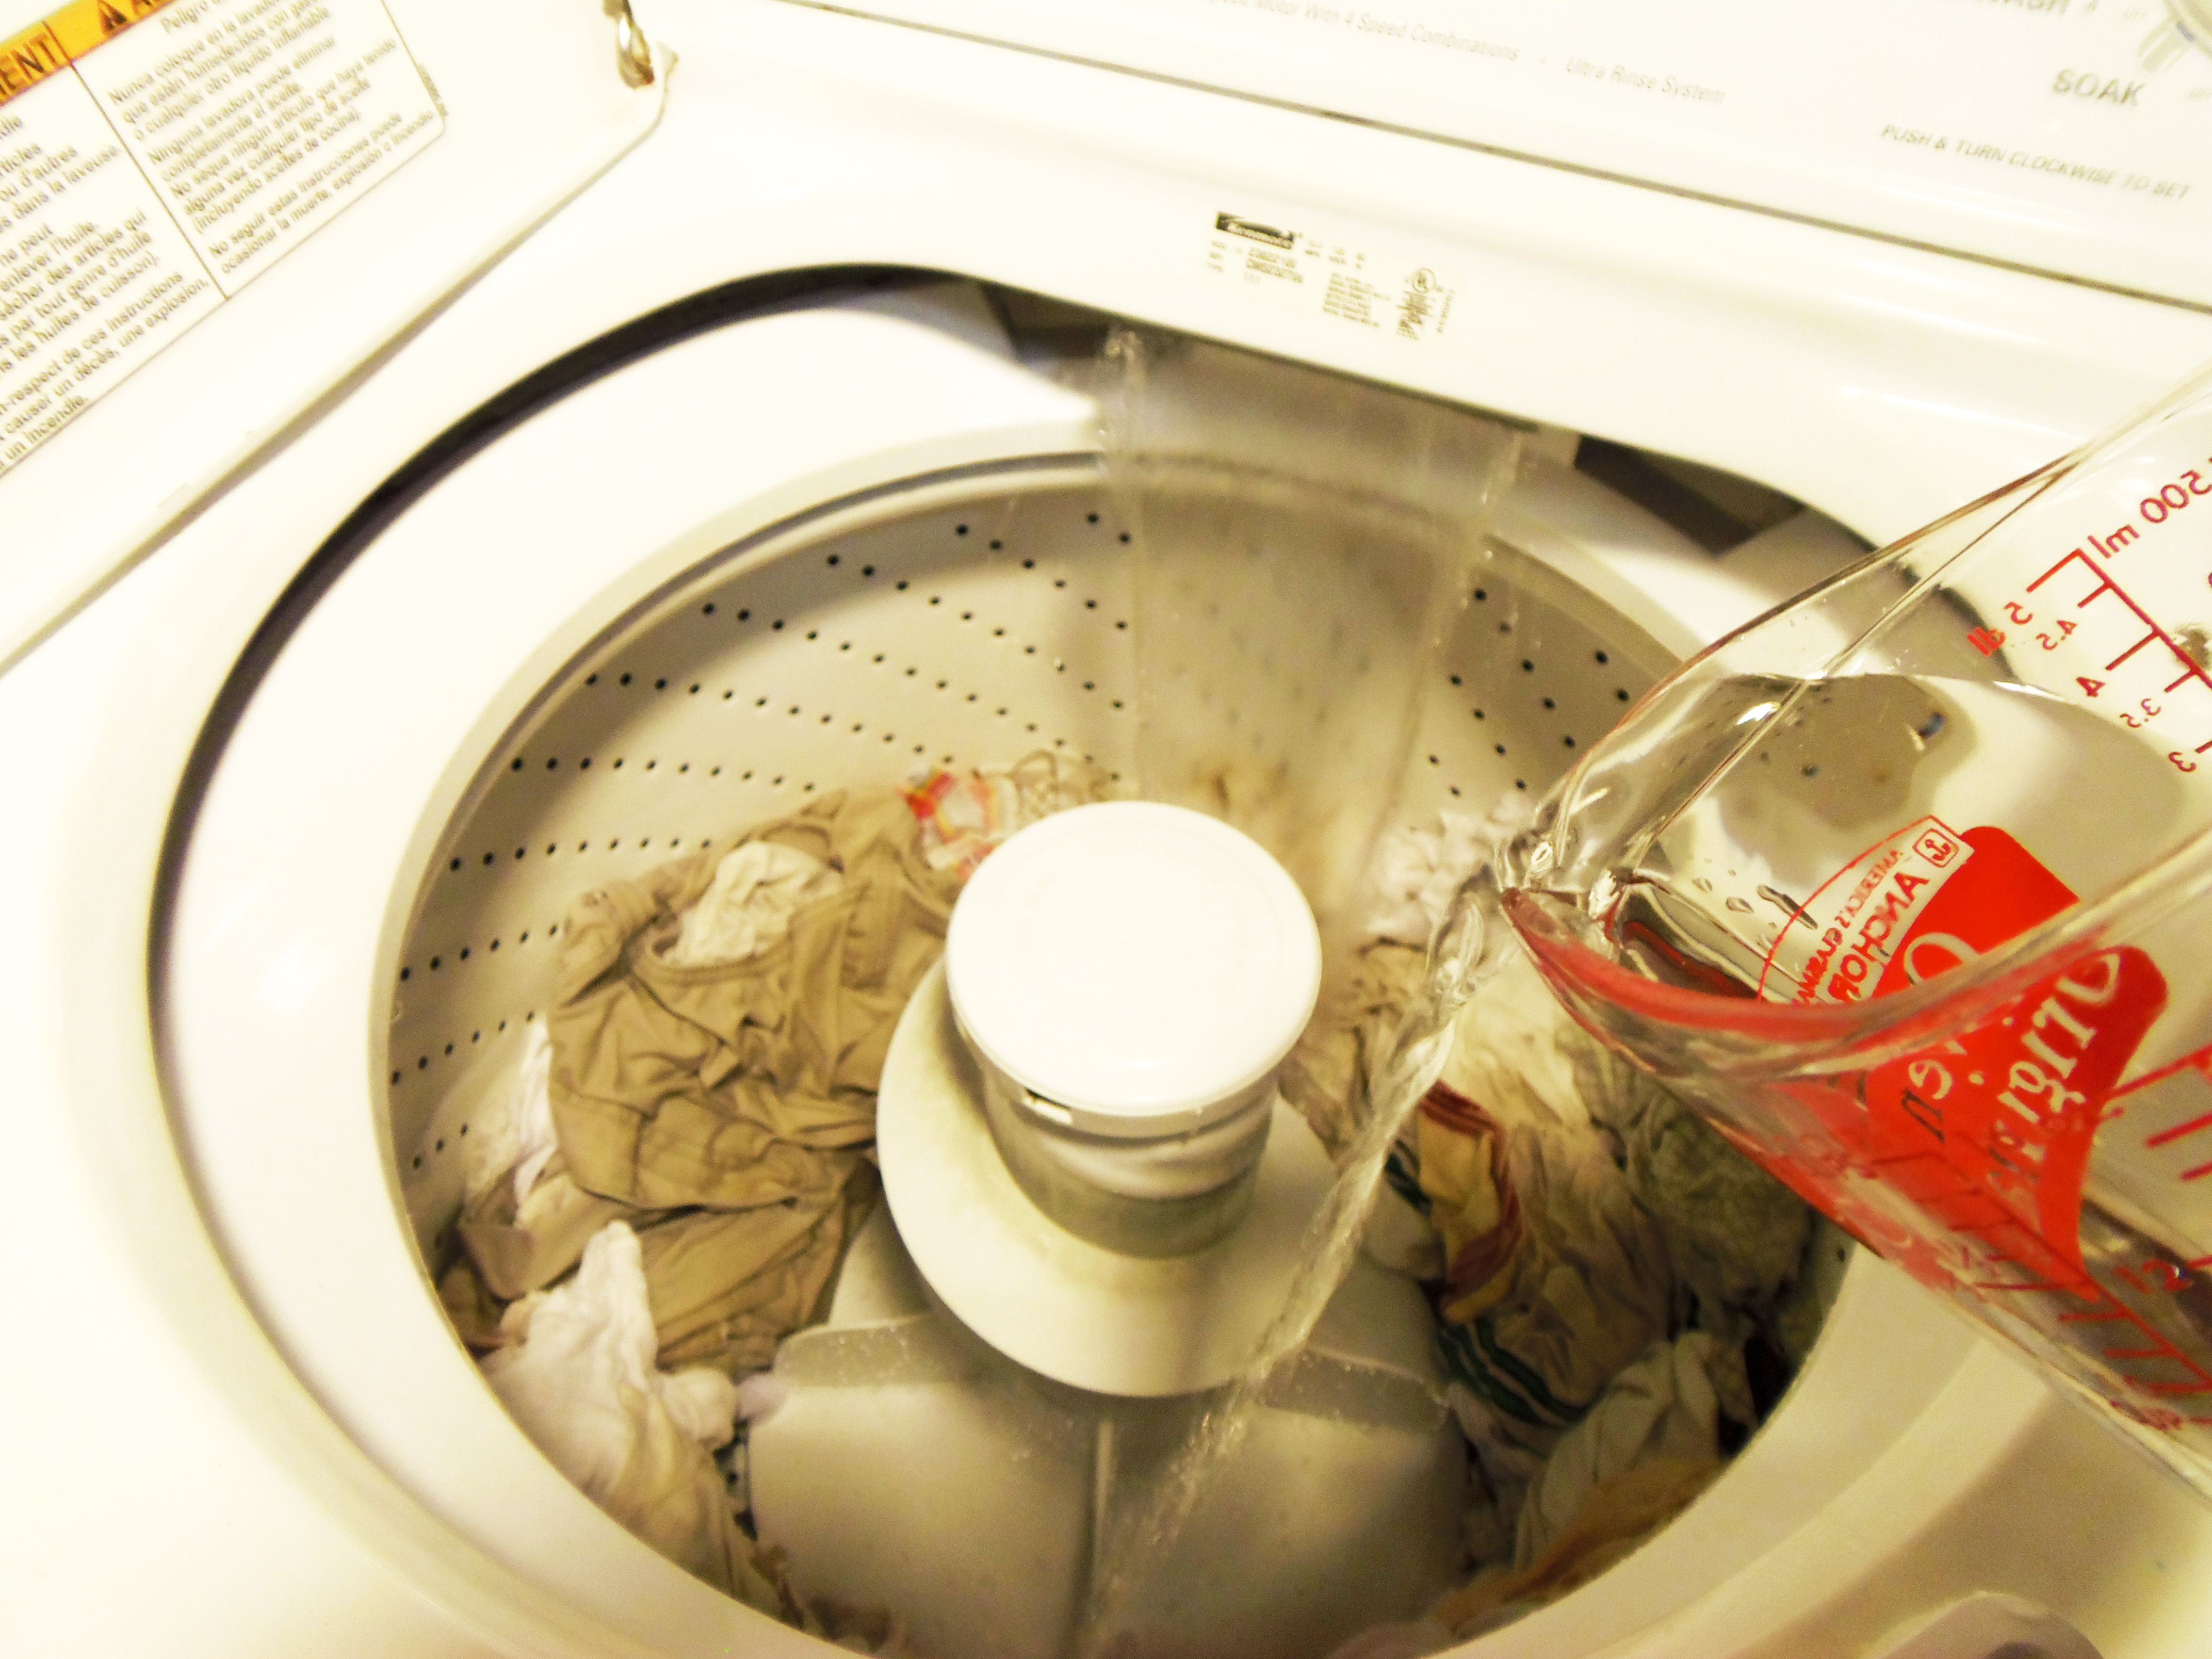 Whiten Clothes With A Frugal Vinegar Laundry Booster